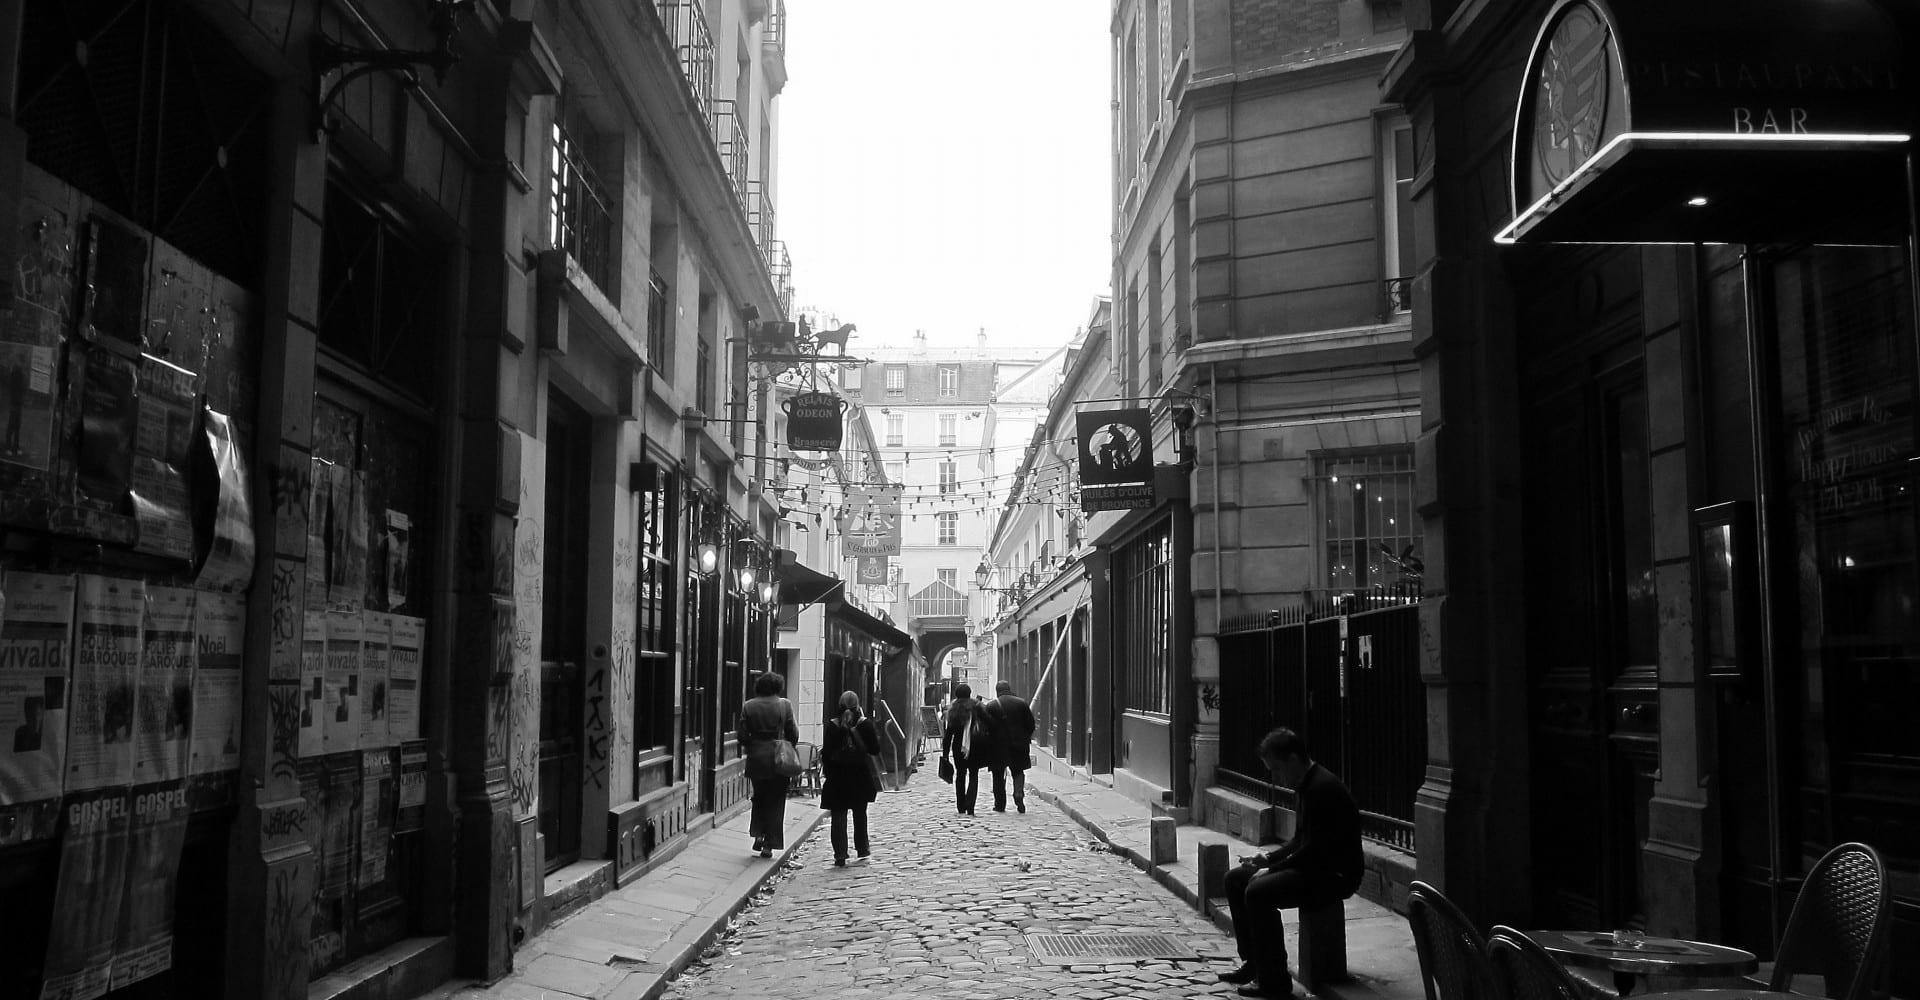 A Moment in Time: Paris' 6e Arrondissement